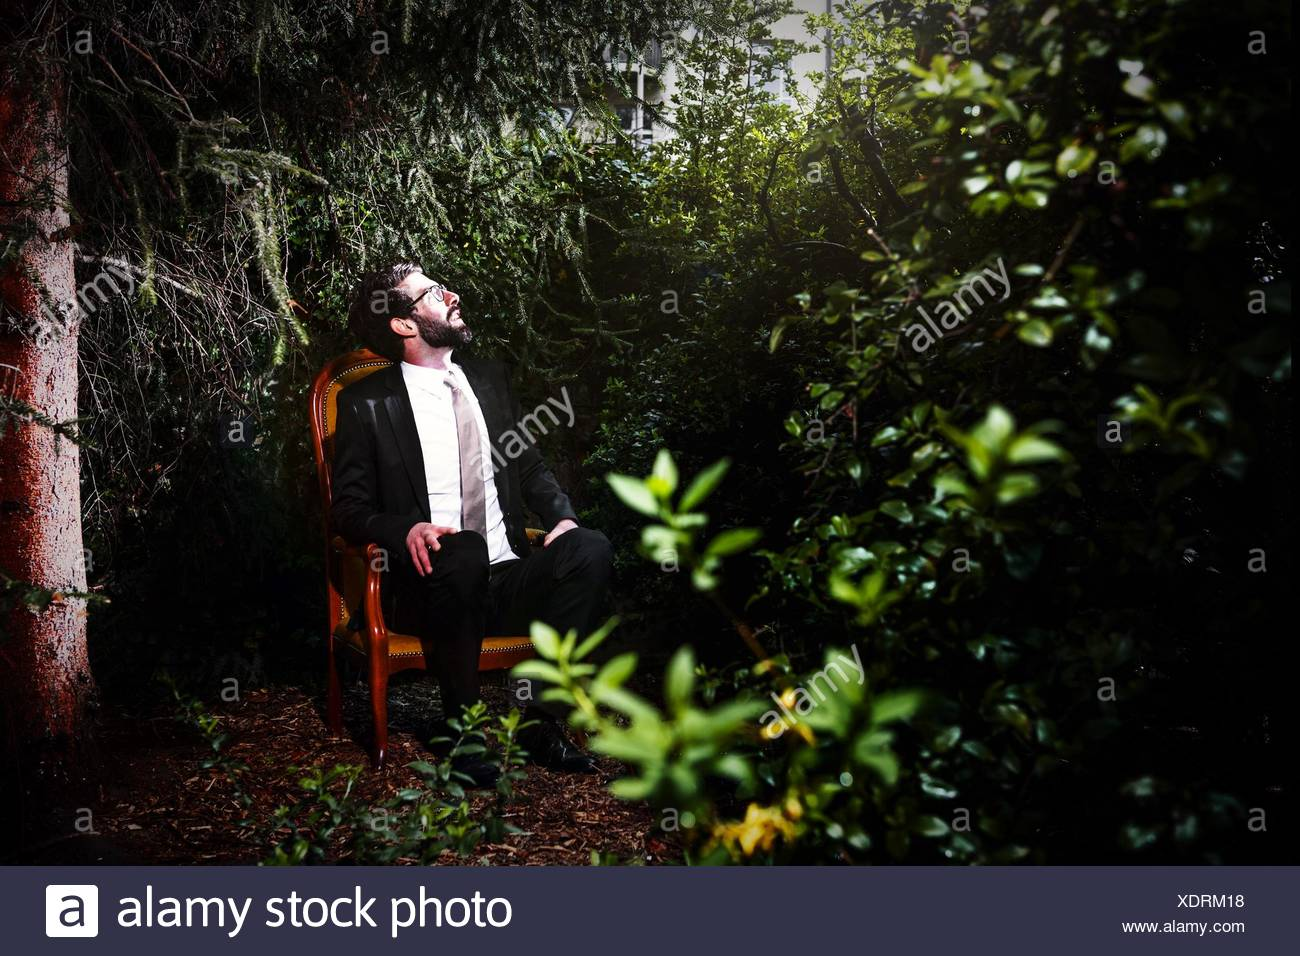 Man Wearing Suit Sitting On Chair In Yard While Looking Up Stock Photo